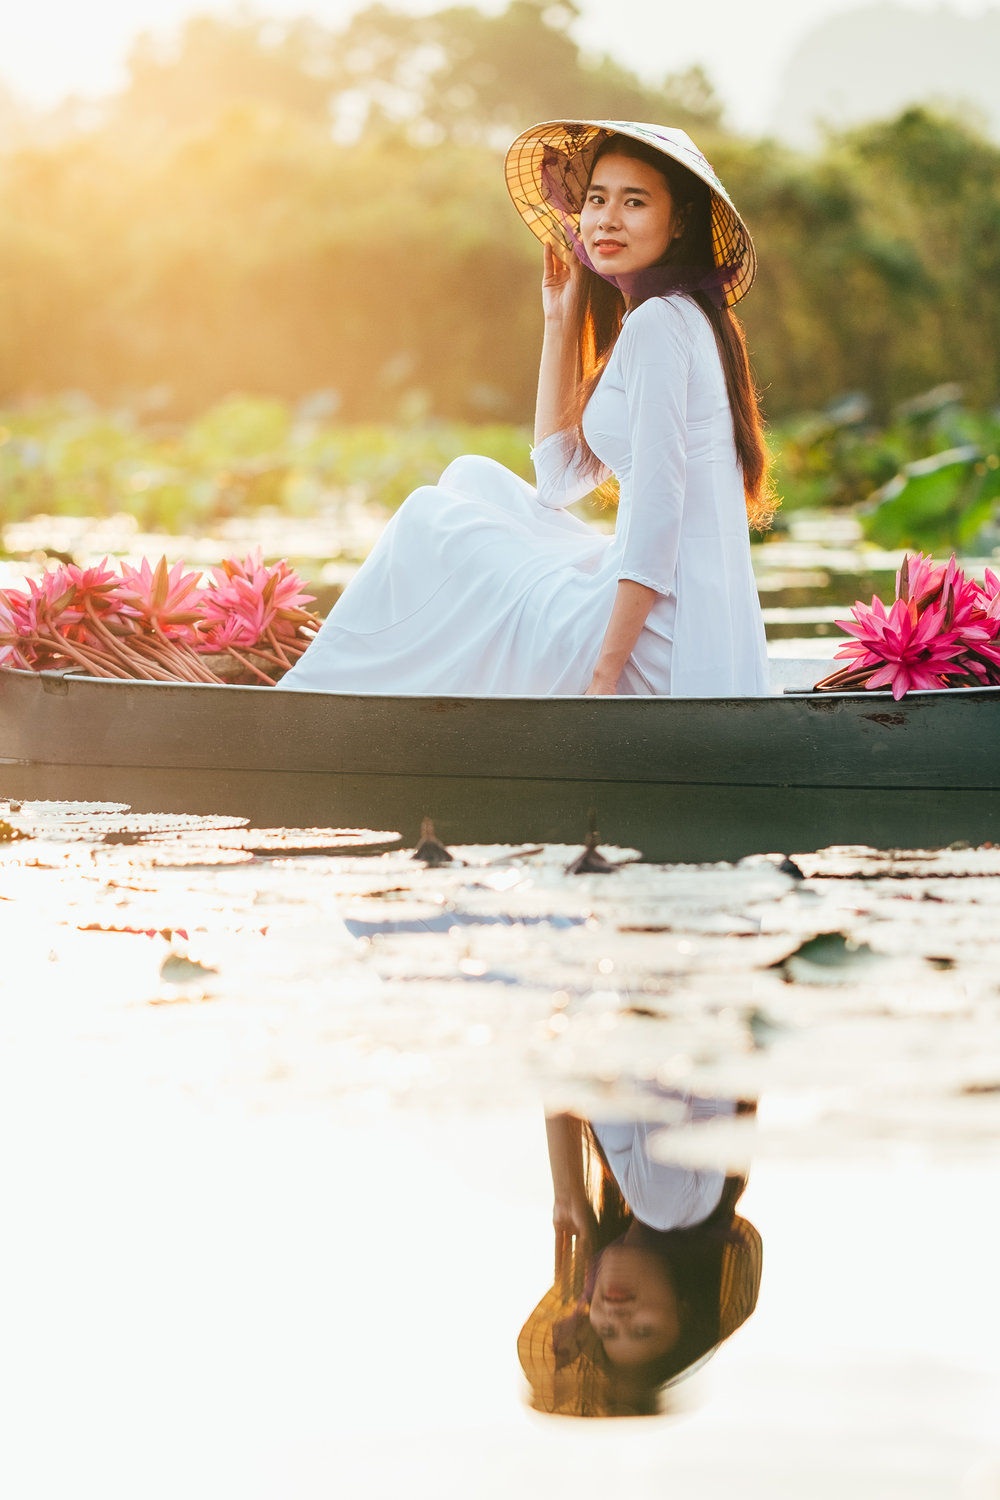 A beautiful sunrise and a vietnamese girl in her tradional white